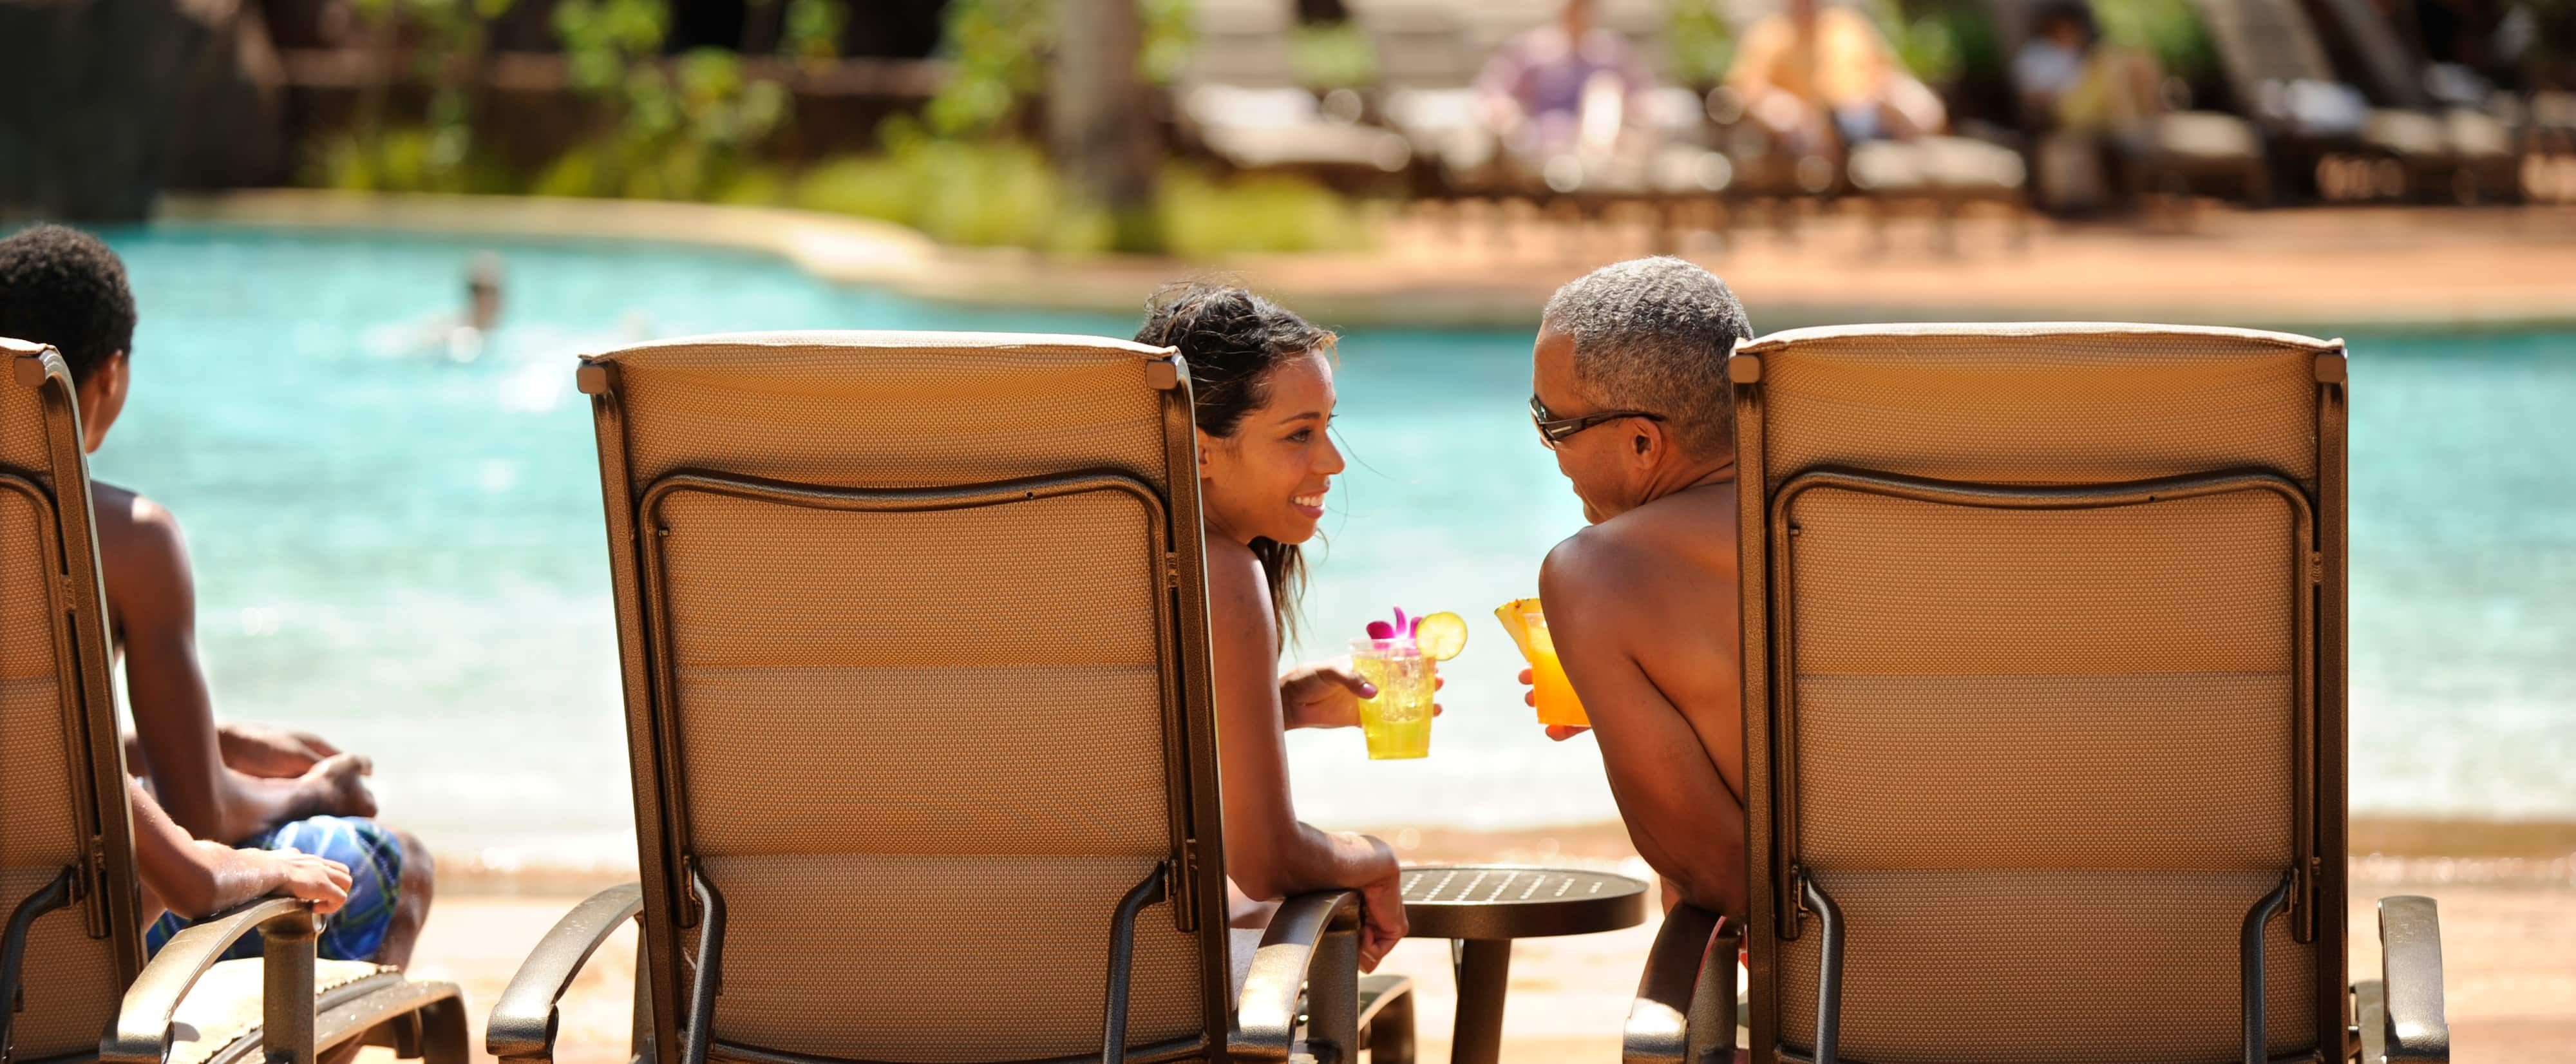 aulani-waikolohe-pool-couple-lounge-chairs-g.jpg